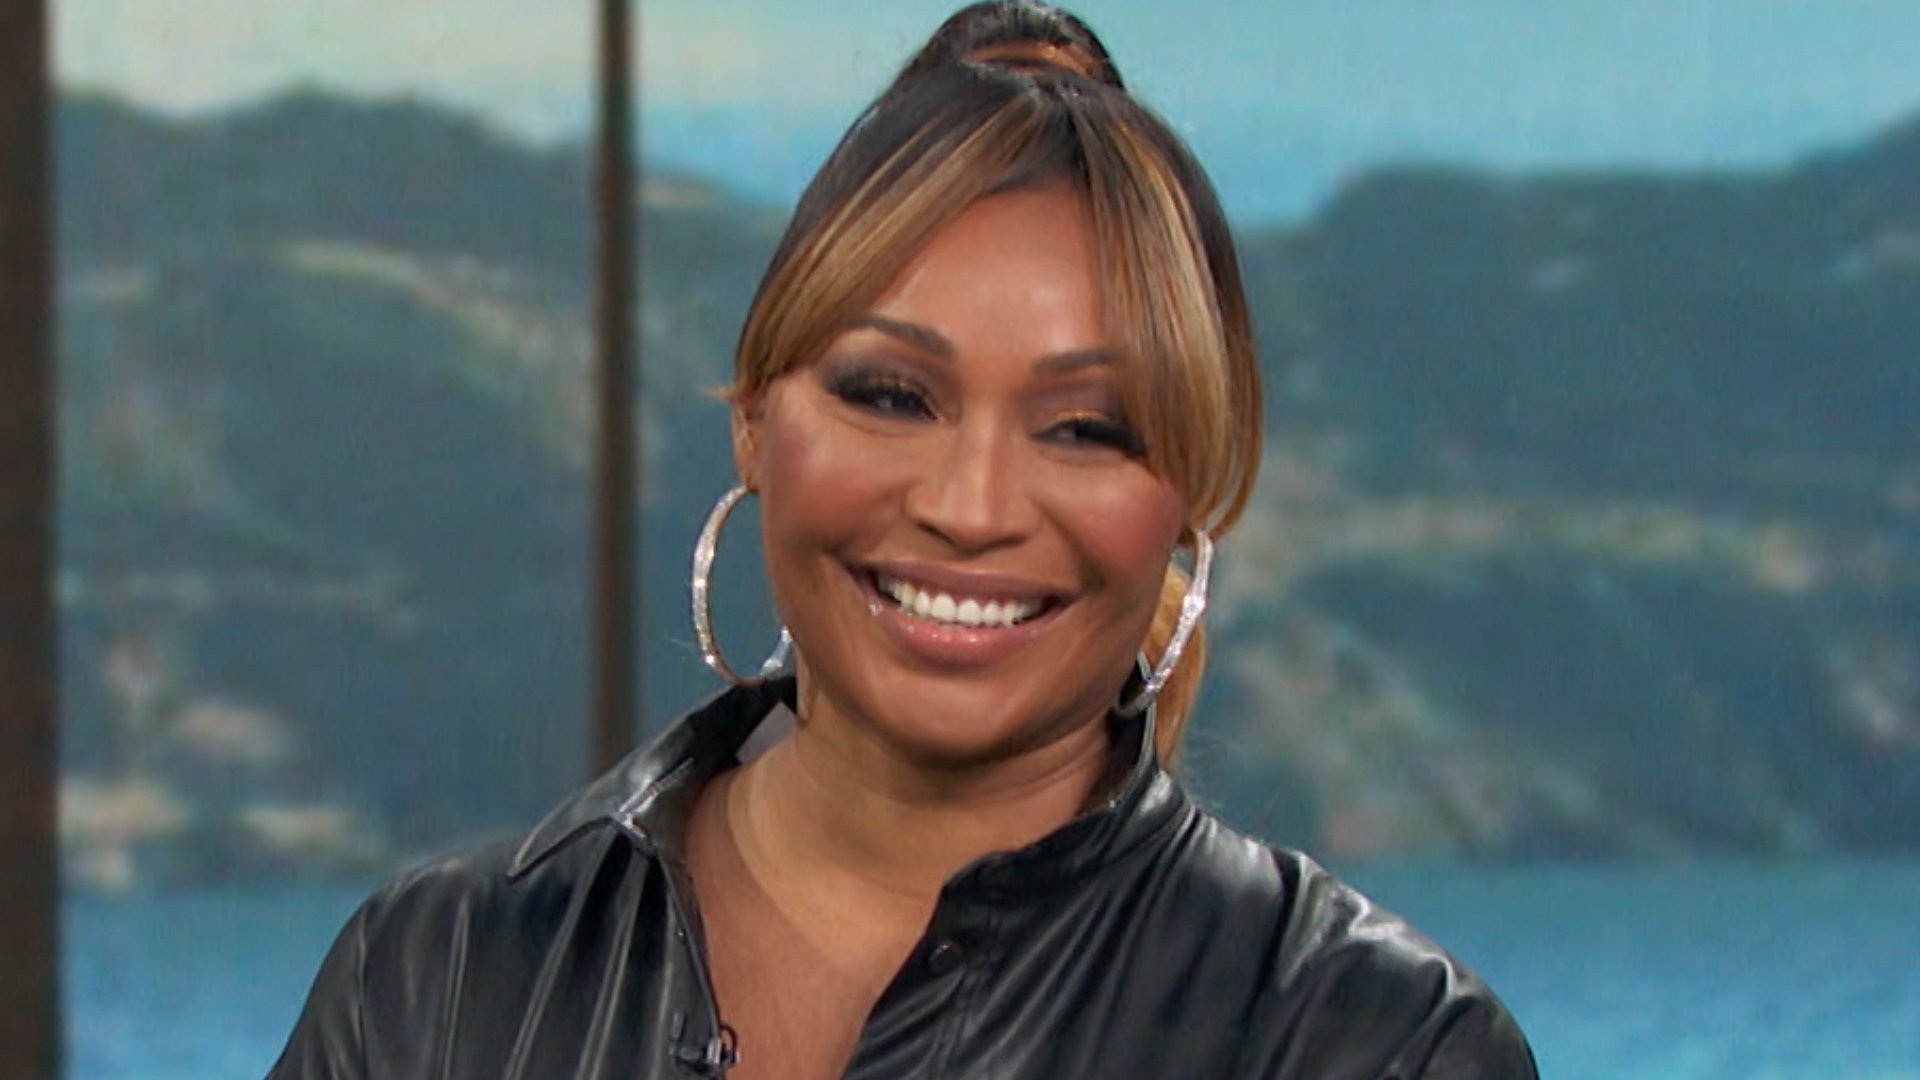 Cynthia Bailey Reveals To Her Fans What She Would Tell Her Younger Self